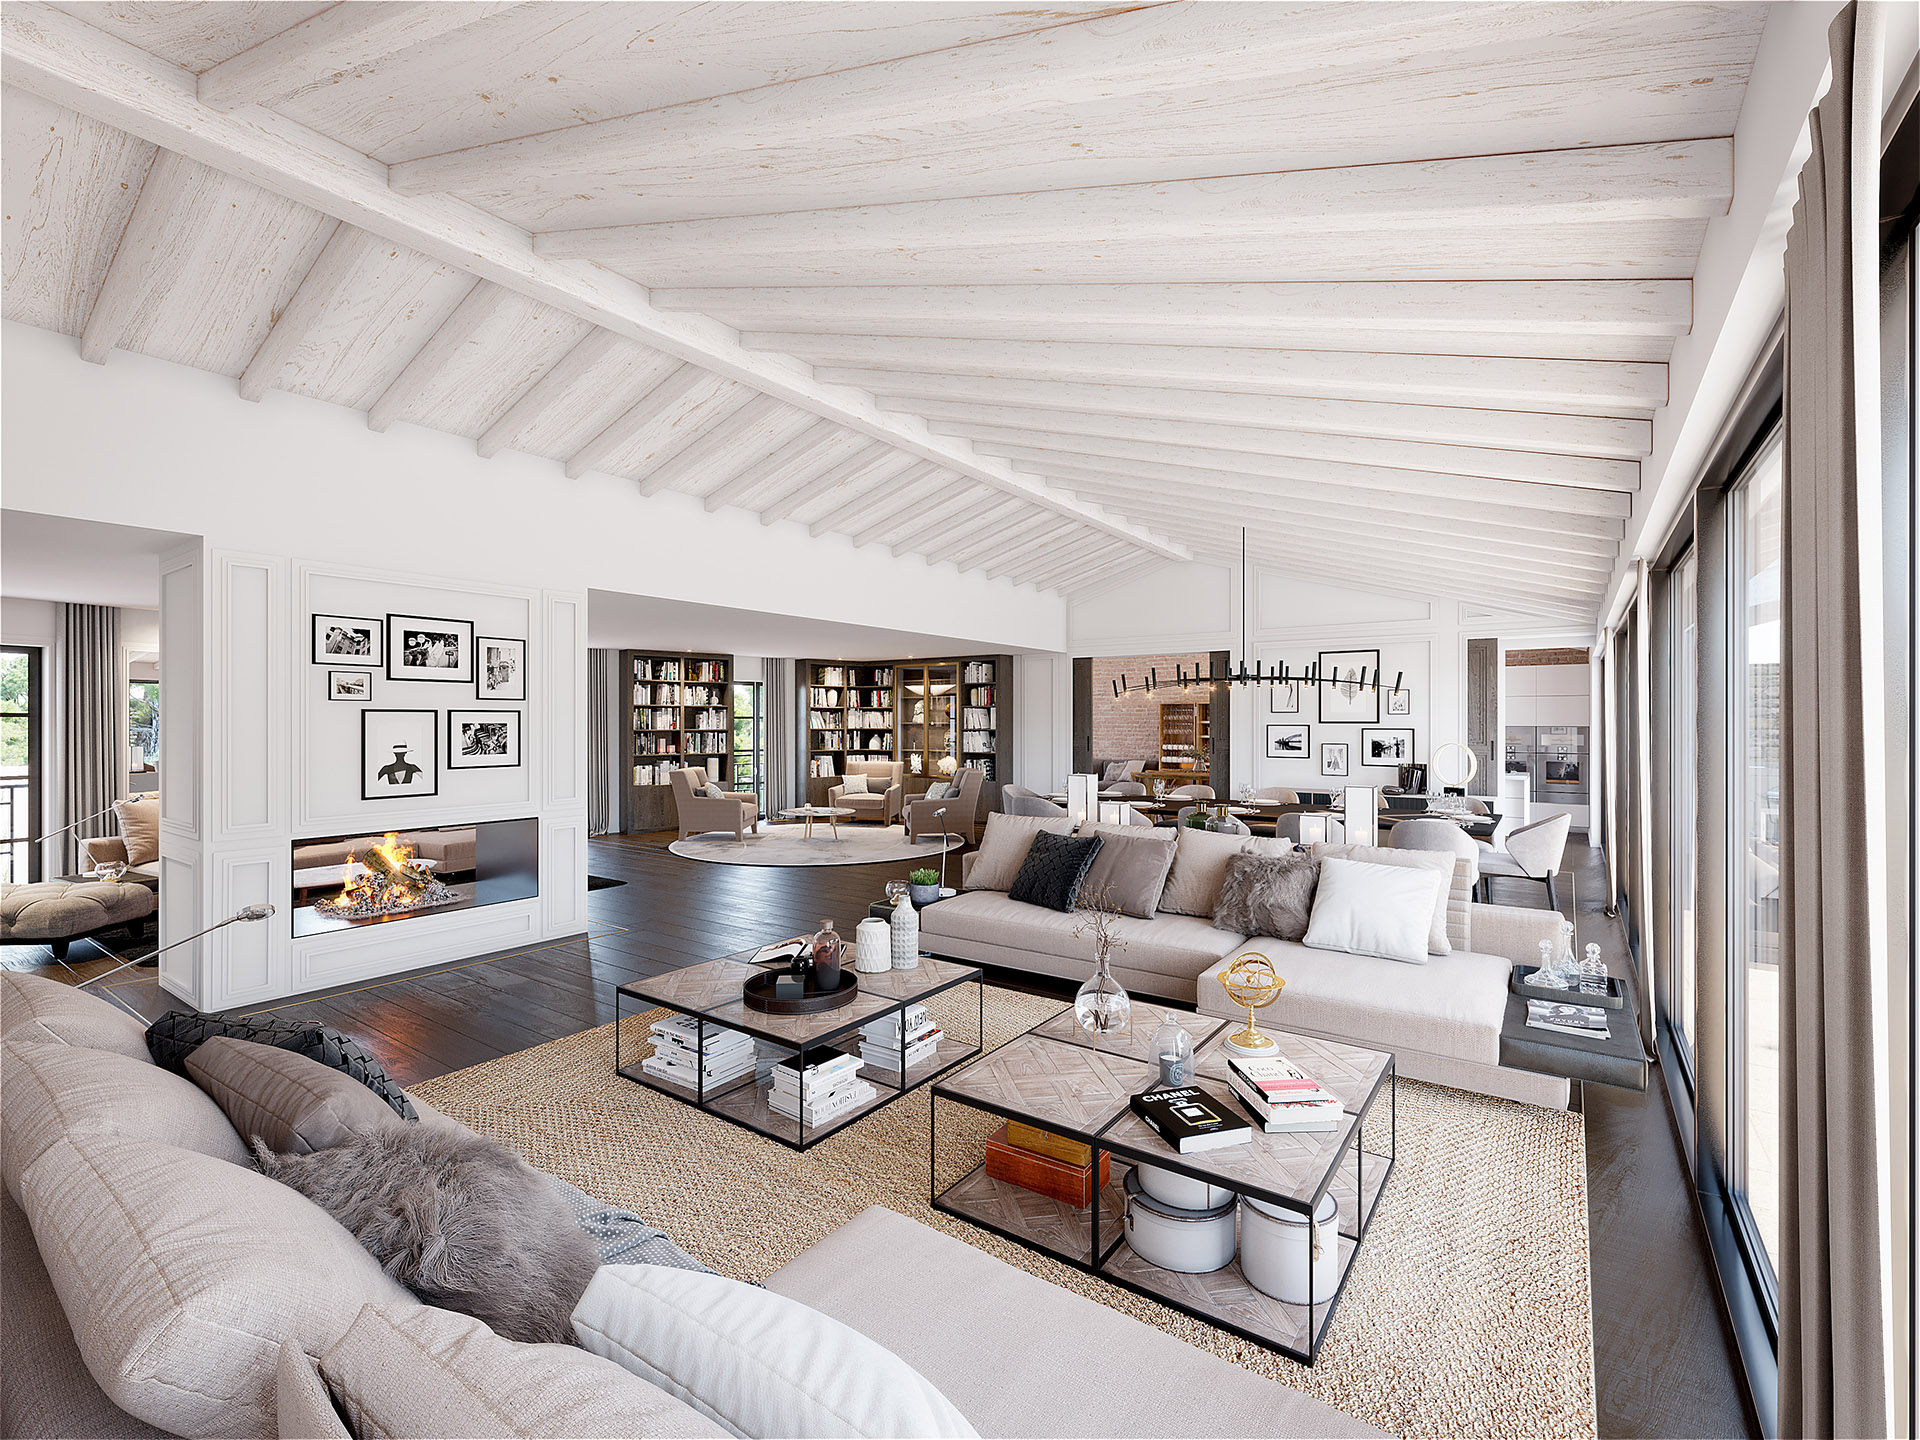 3D rendering of a modern and contemporary living room